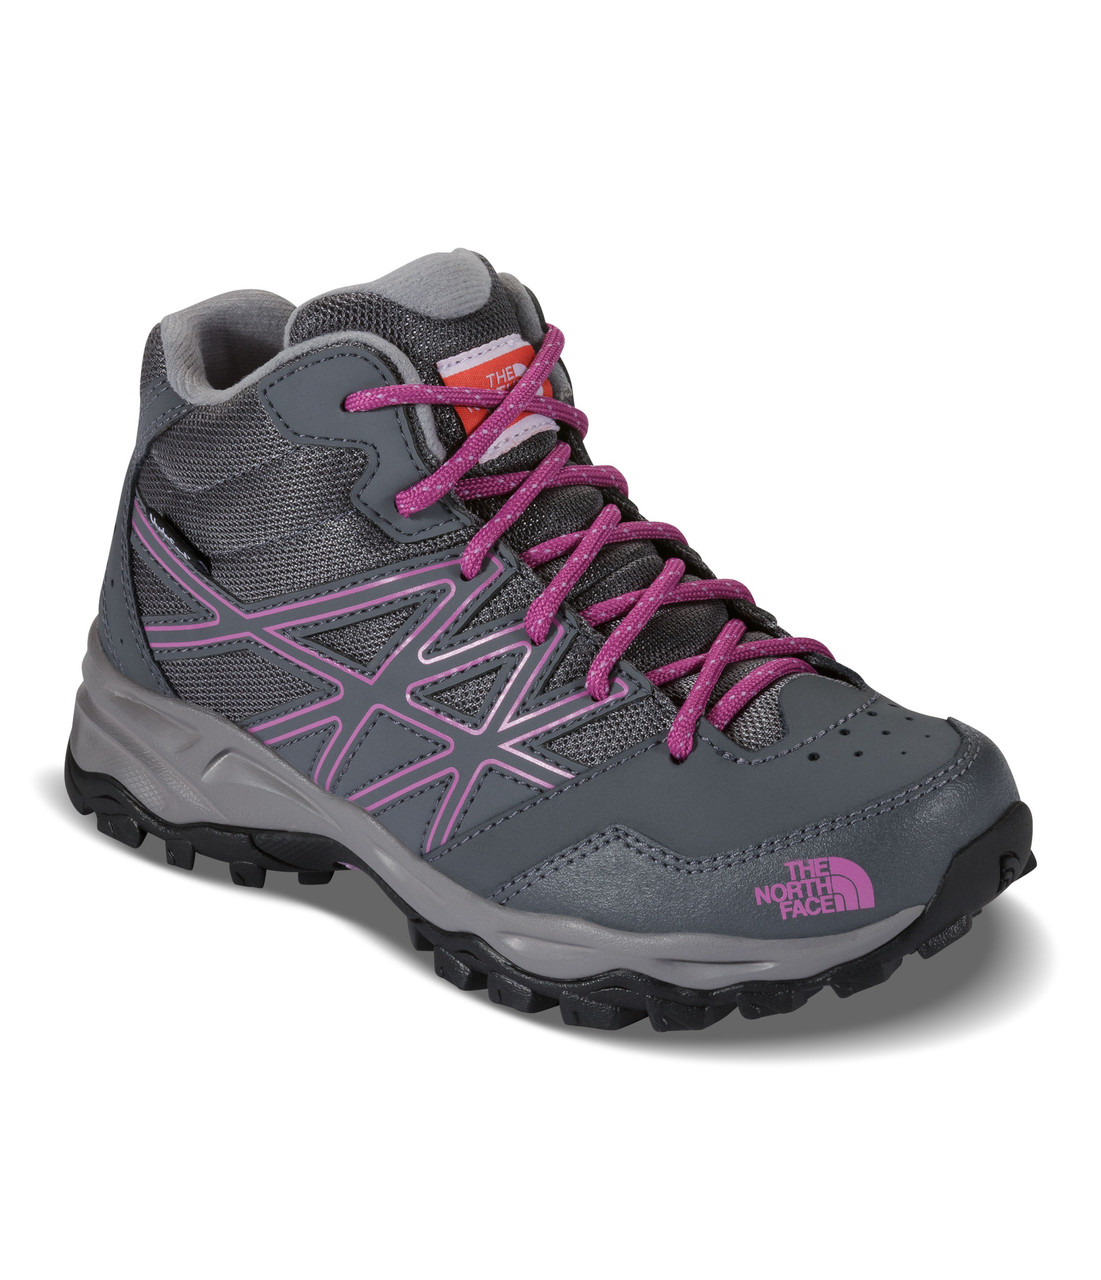 d07fef75a1a7 The North Face Youth Hedgehog Hiker Mid Waterproof Hiking Shoe